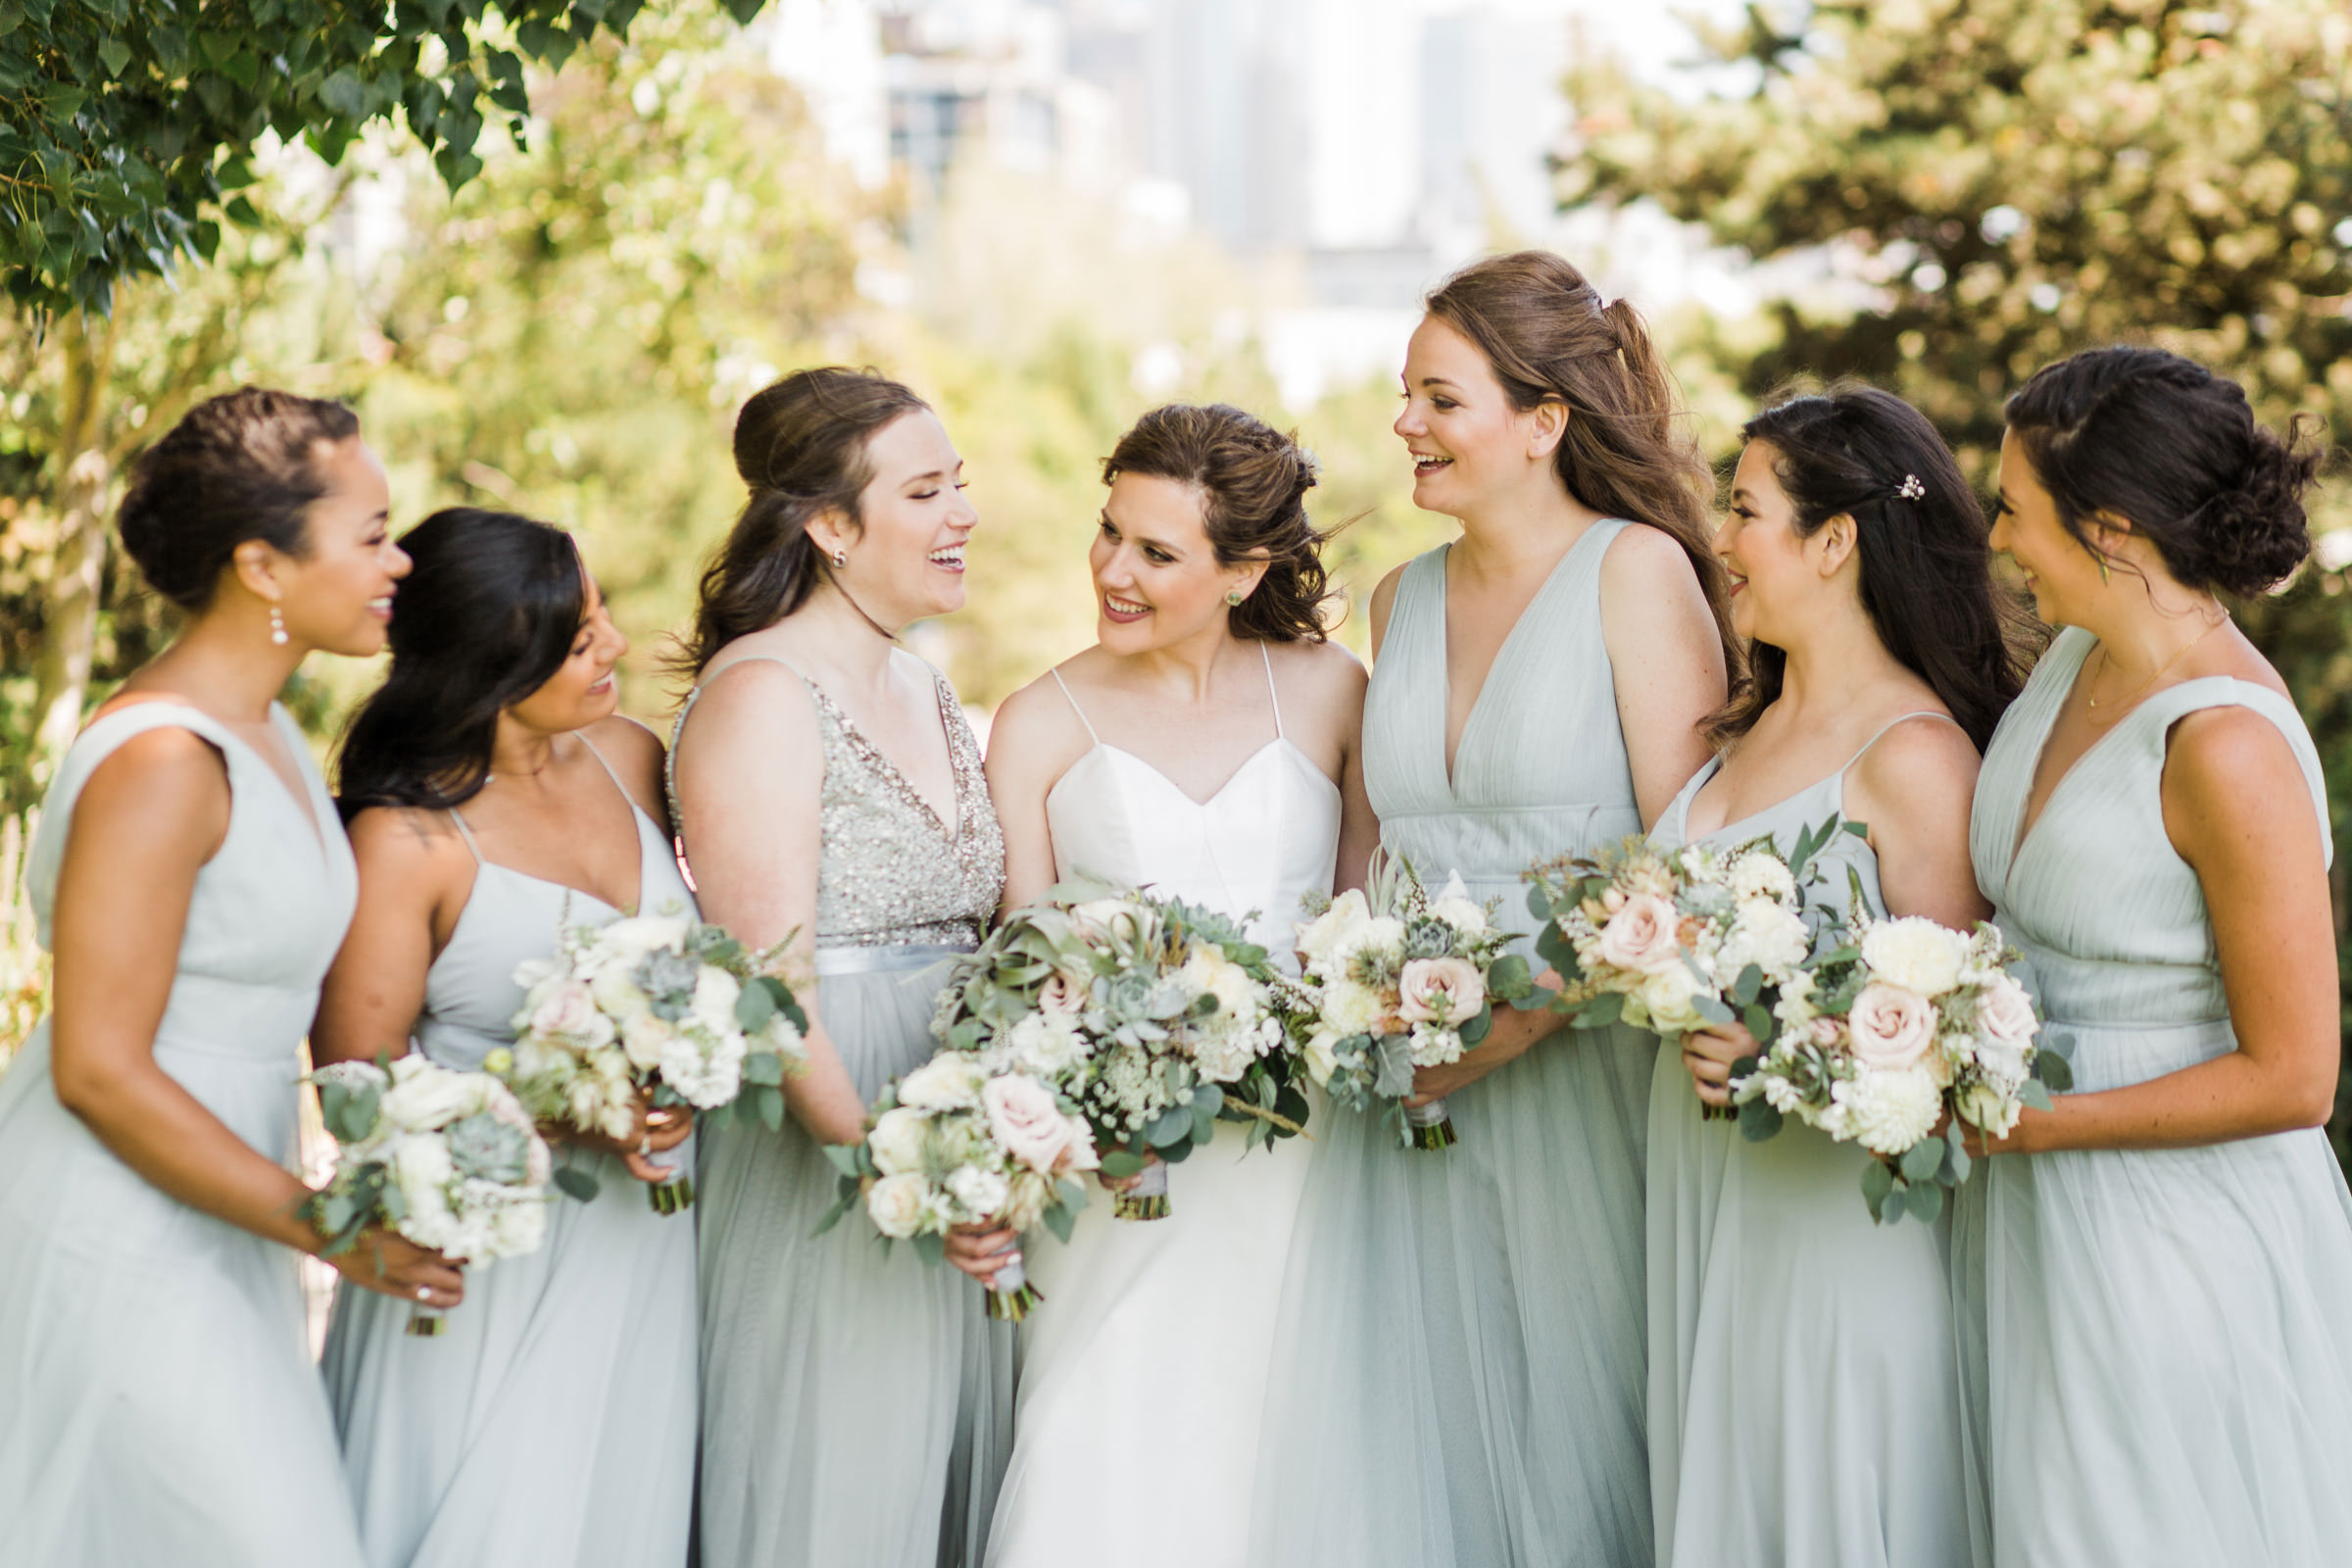 Bride with bridesmaid in powder blue chiffon dresses - photo by Stephanie Cristalli Photography